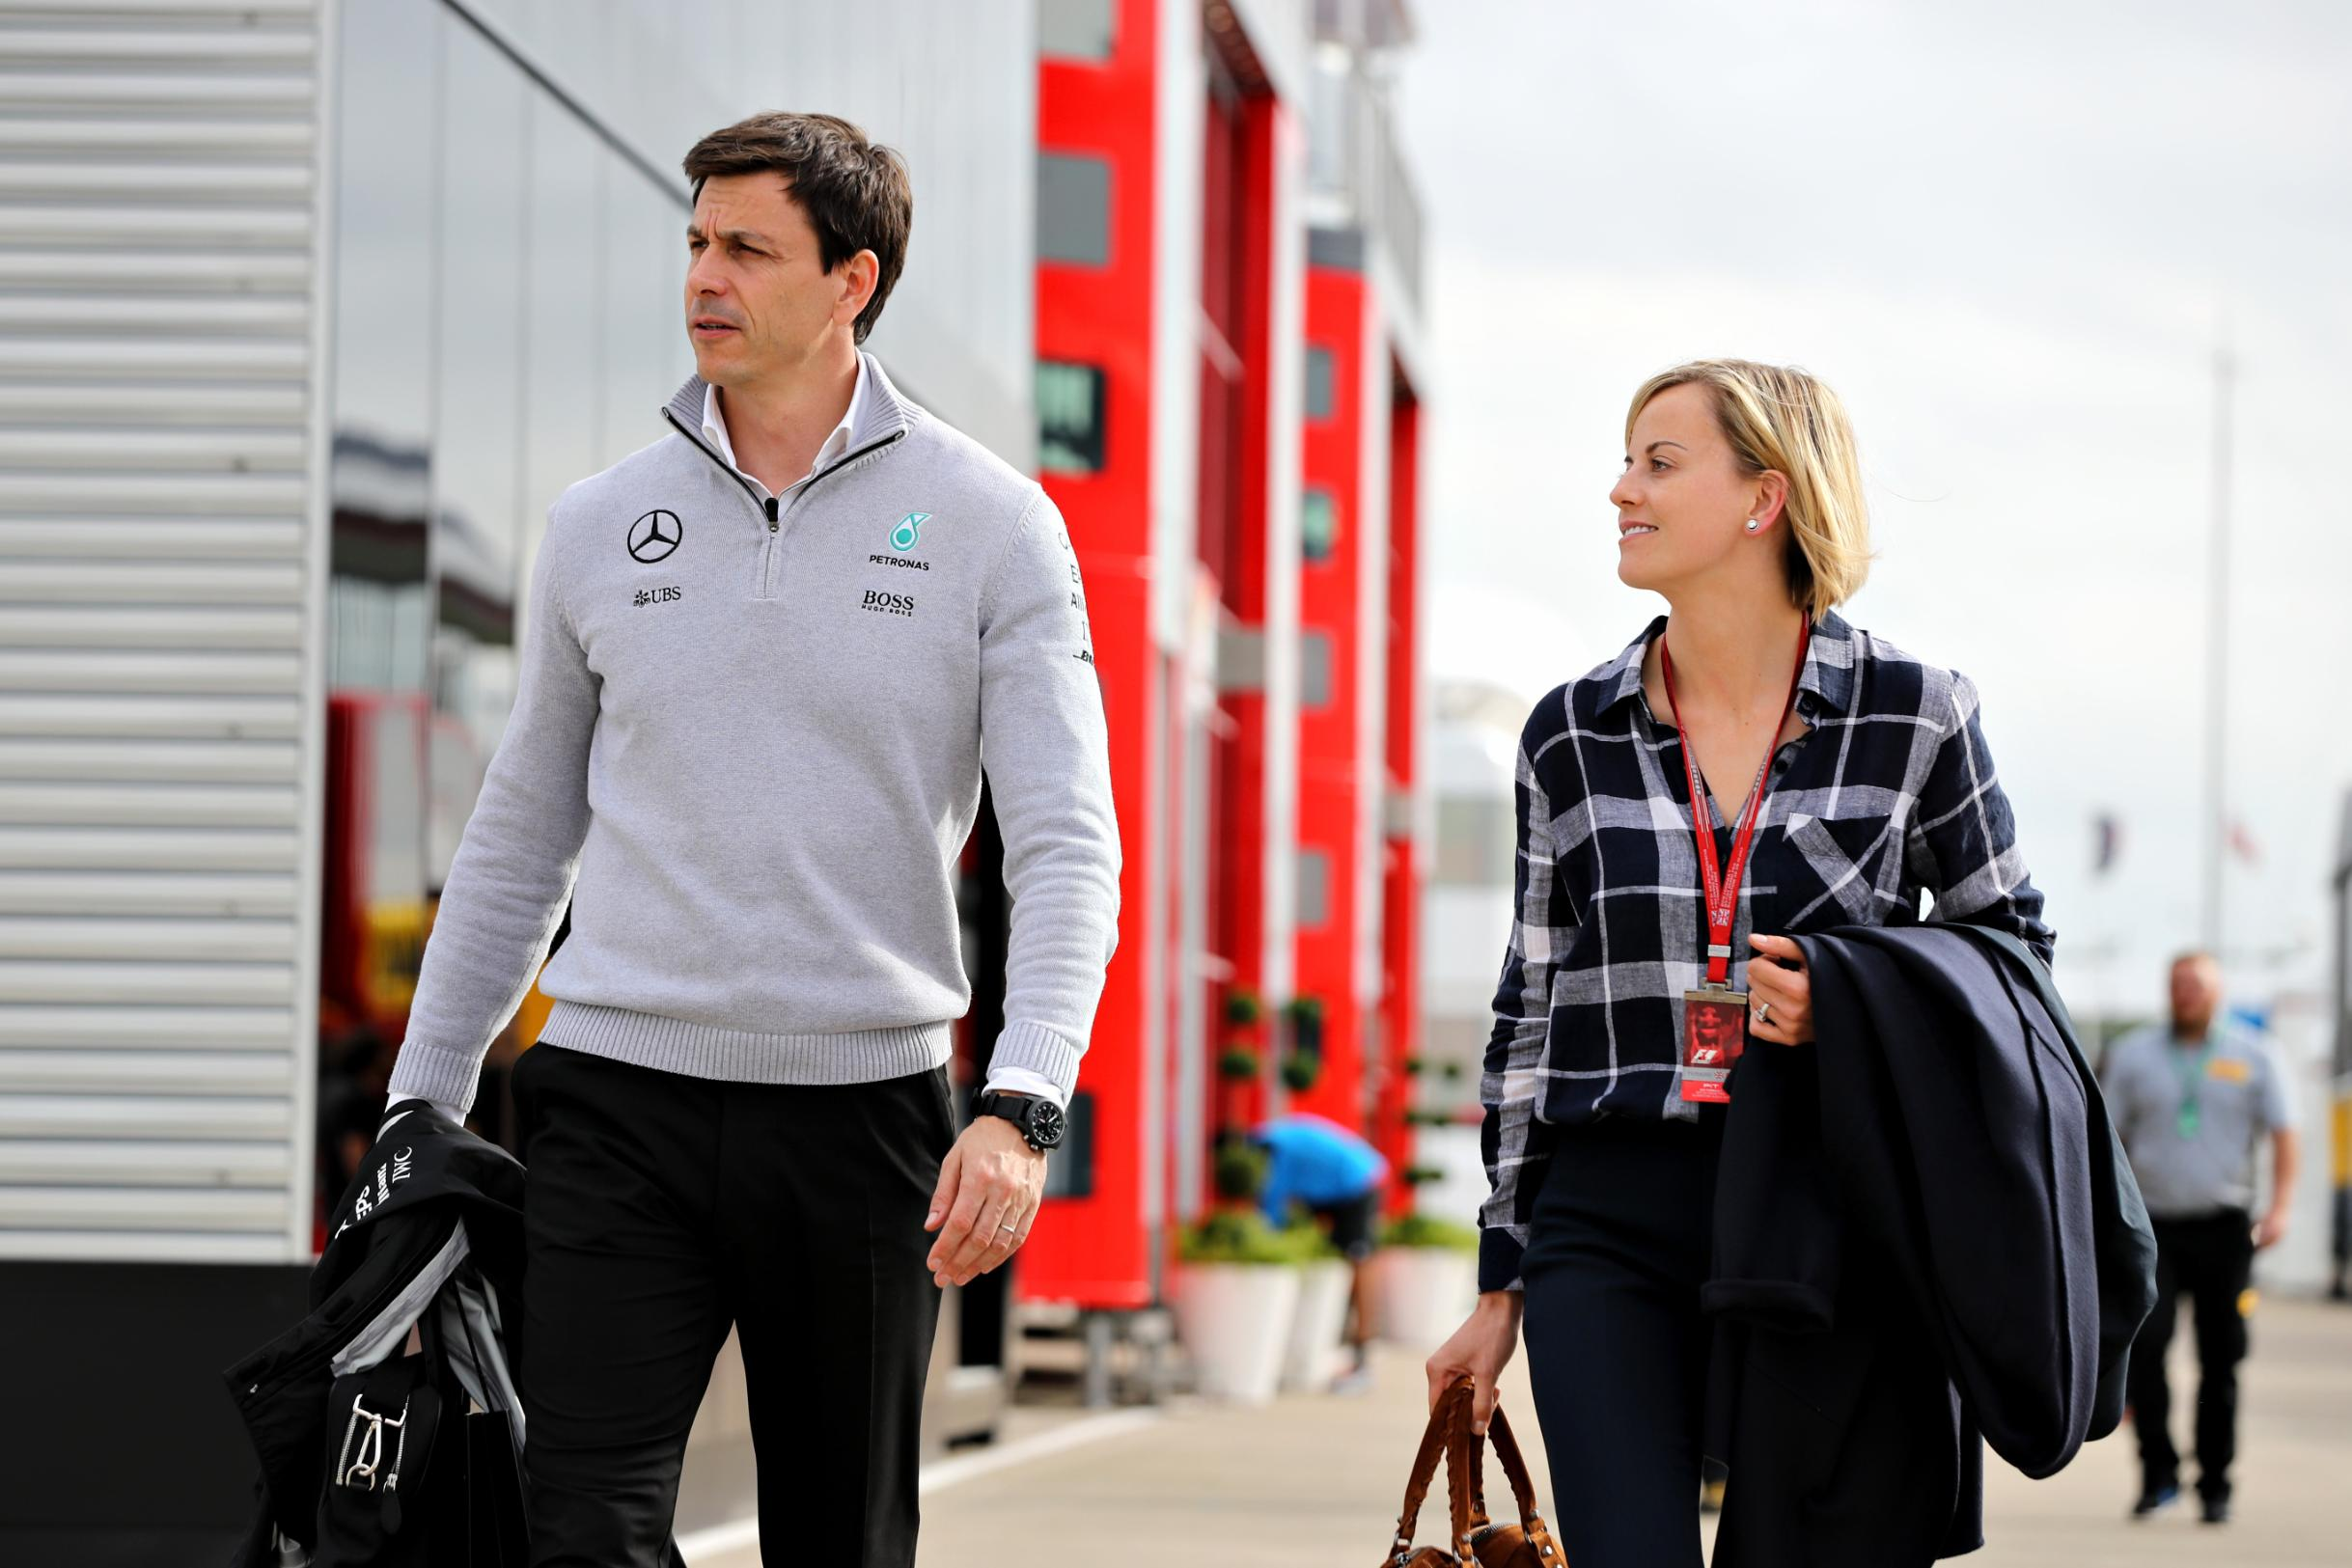 Susie Wolff says Lewis Hamilton's criticism of F1 is 'absolutely valid'